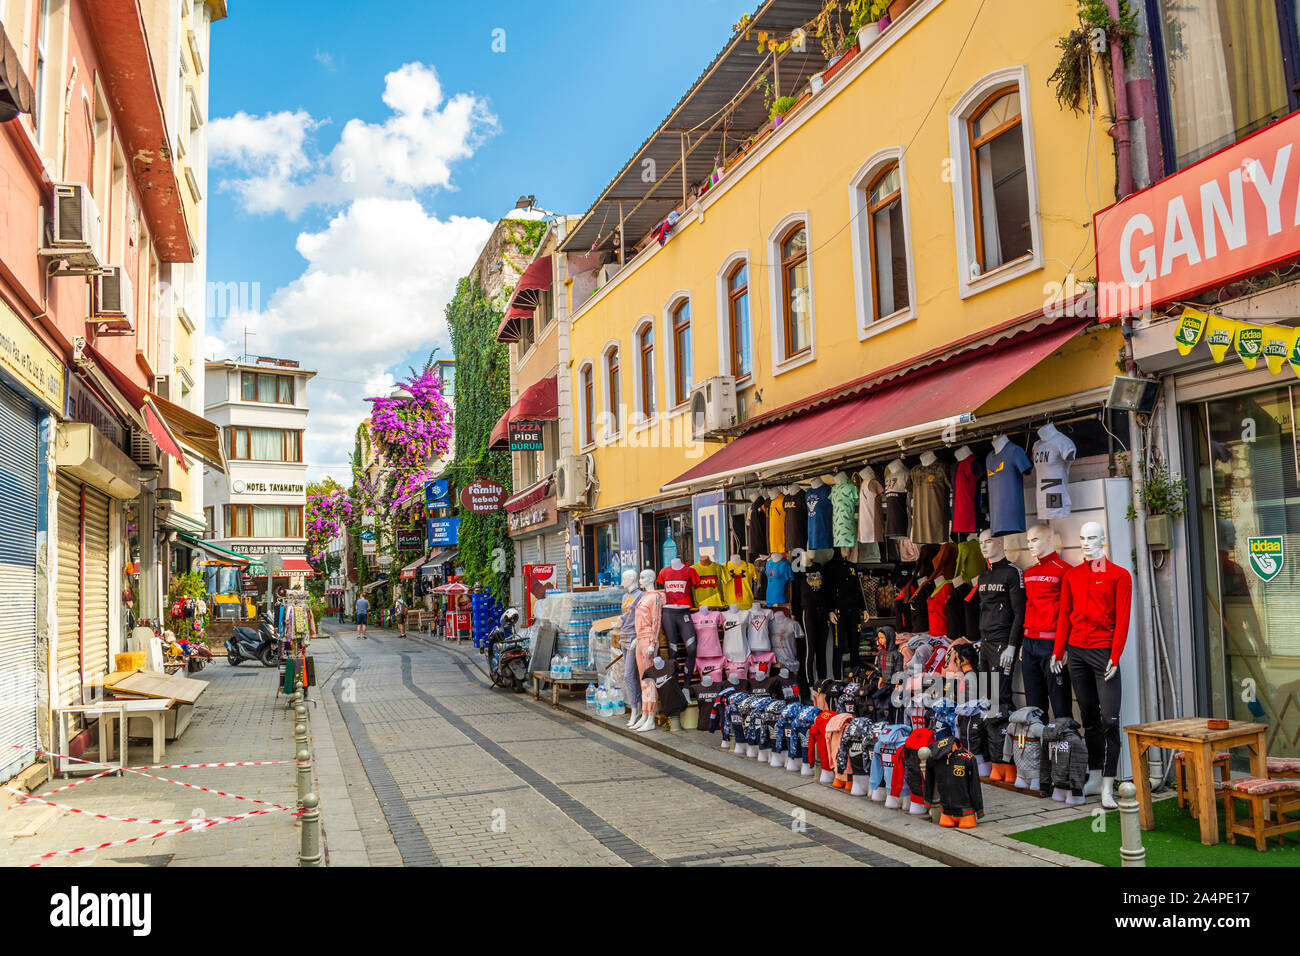 A colorful street full of gift and souvenir shops in the Sultanahmet district of Istanbul, Turkey Stock Photo